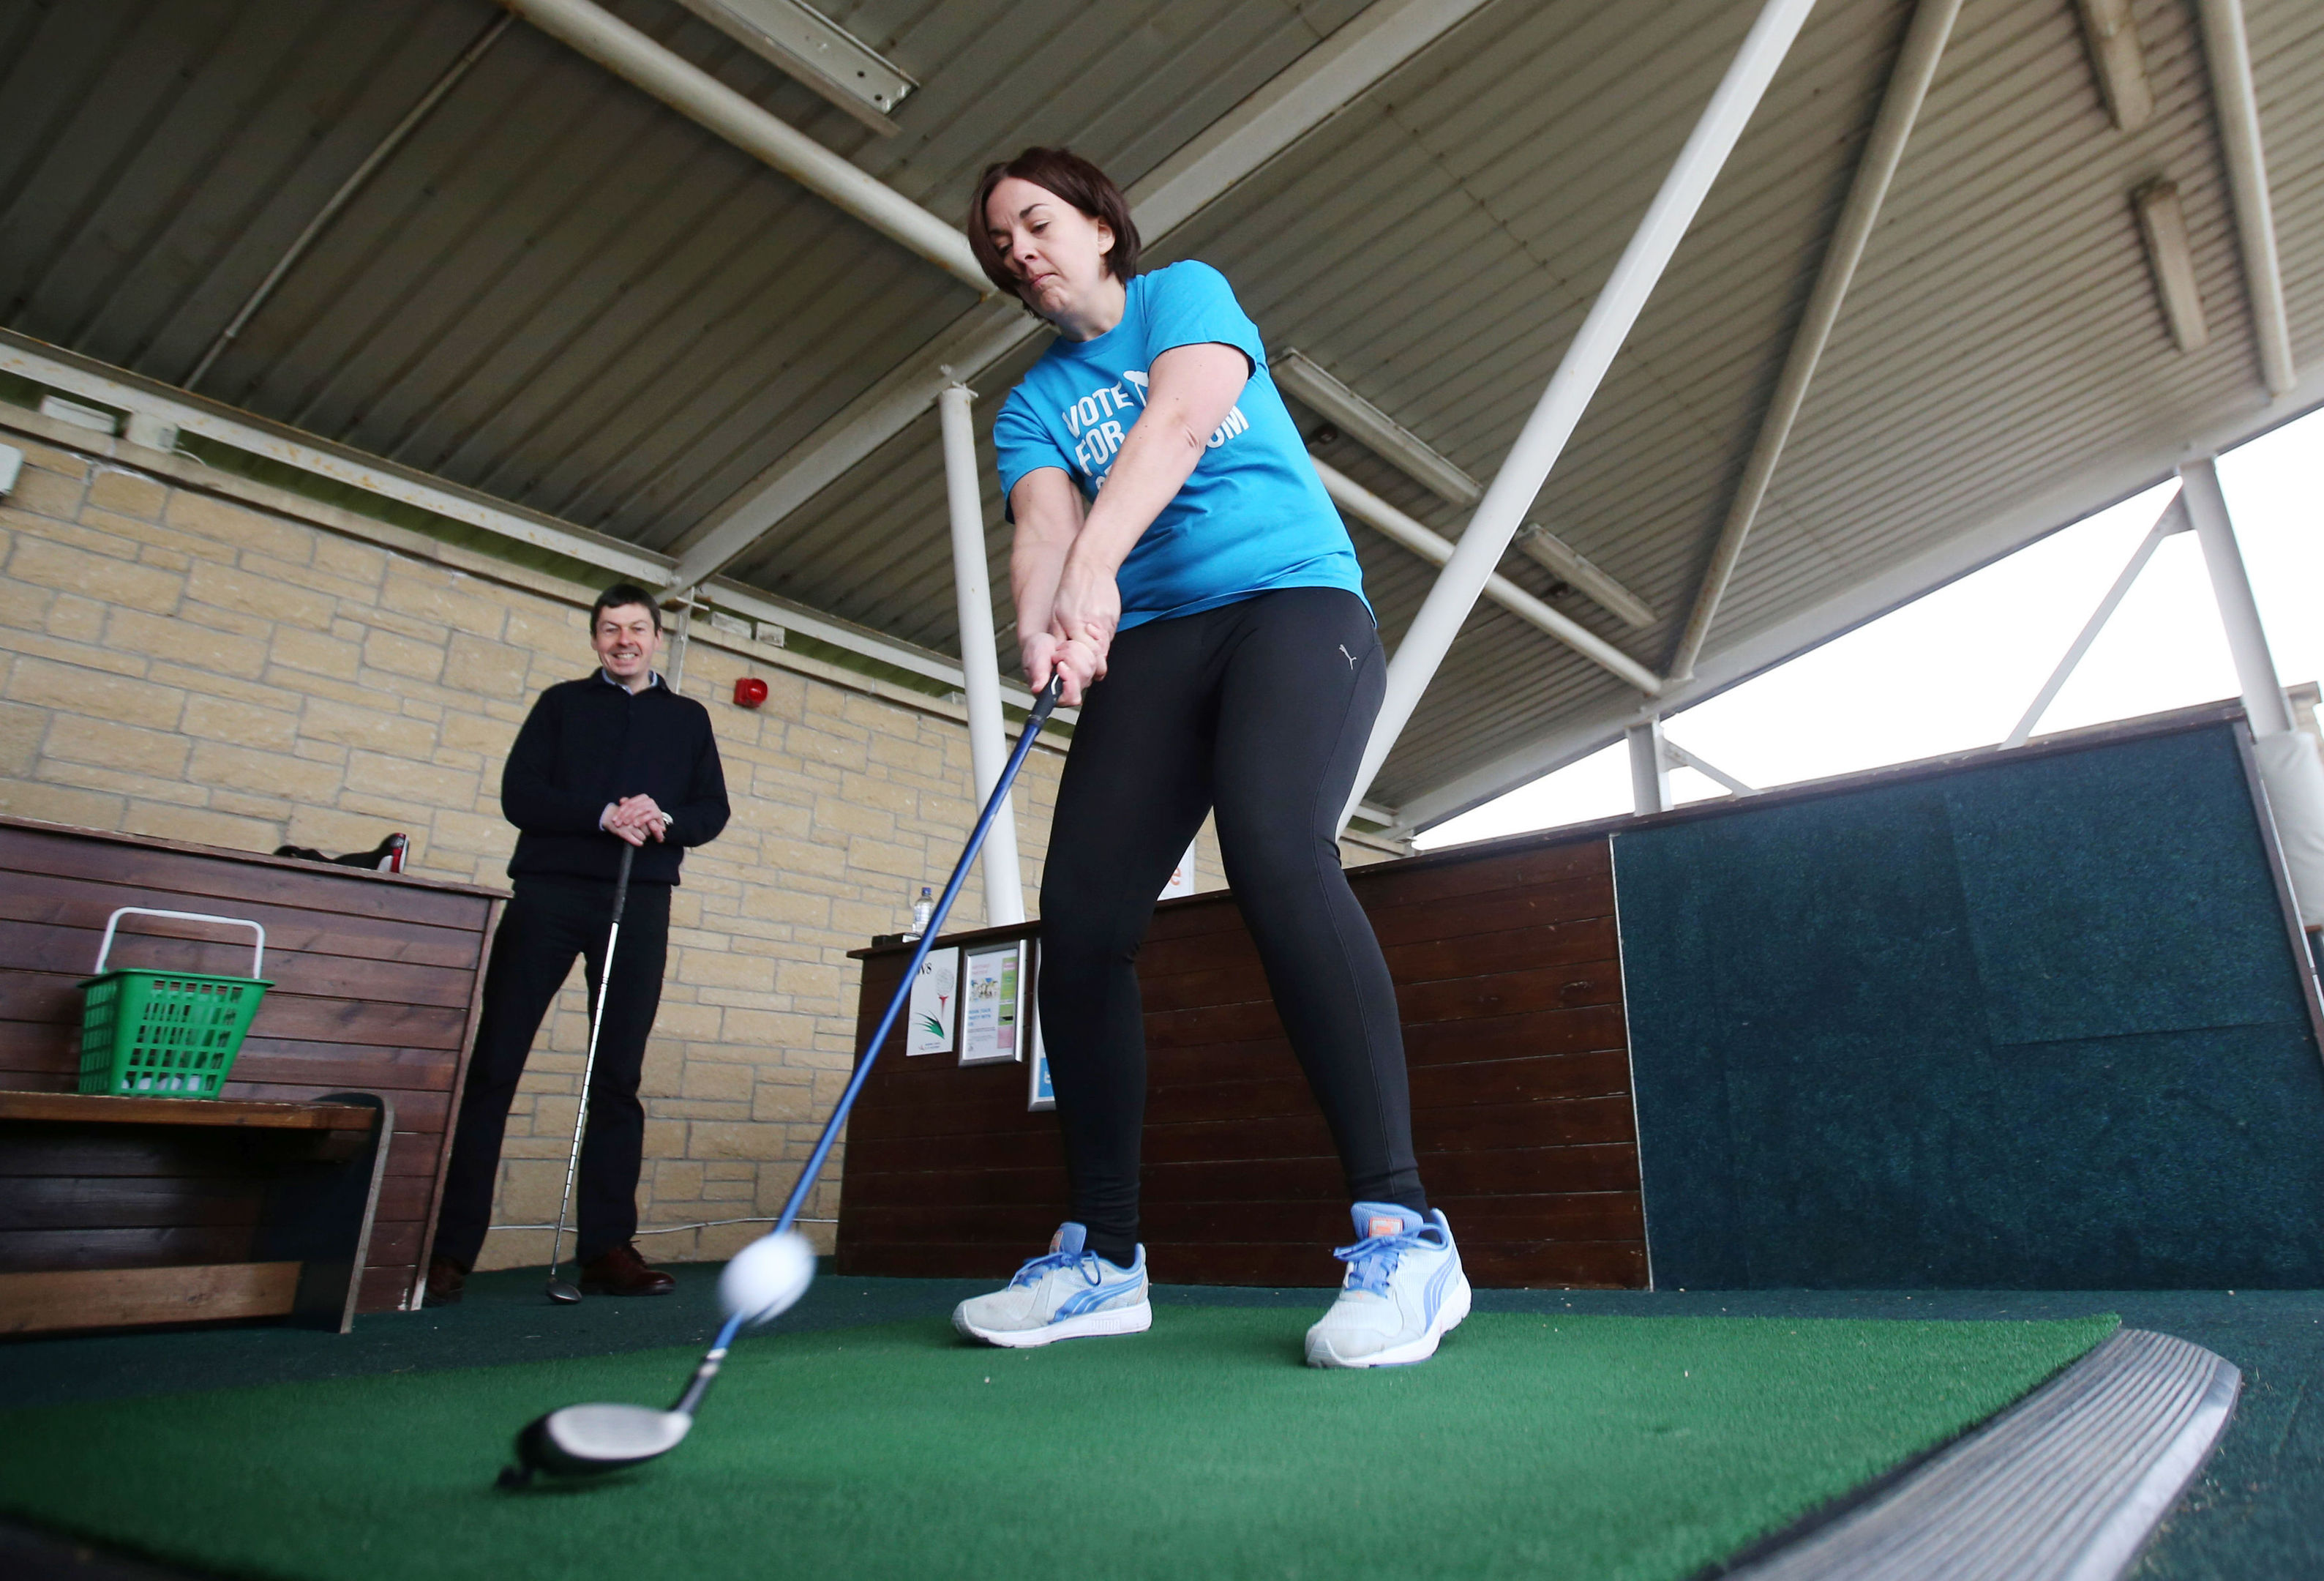 Scottish Labour leader Kezia Dugdale and Eastwood candidate Ken Macintosh at the driving range at Mearns Castle Golf Academy.